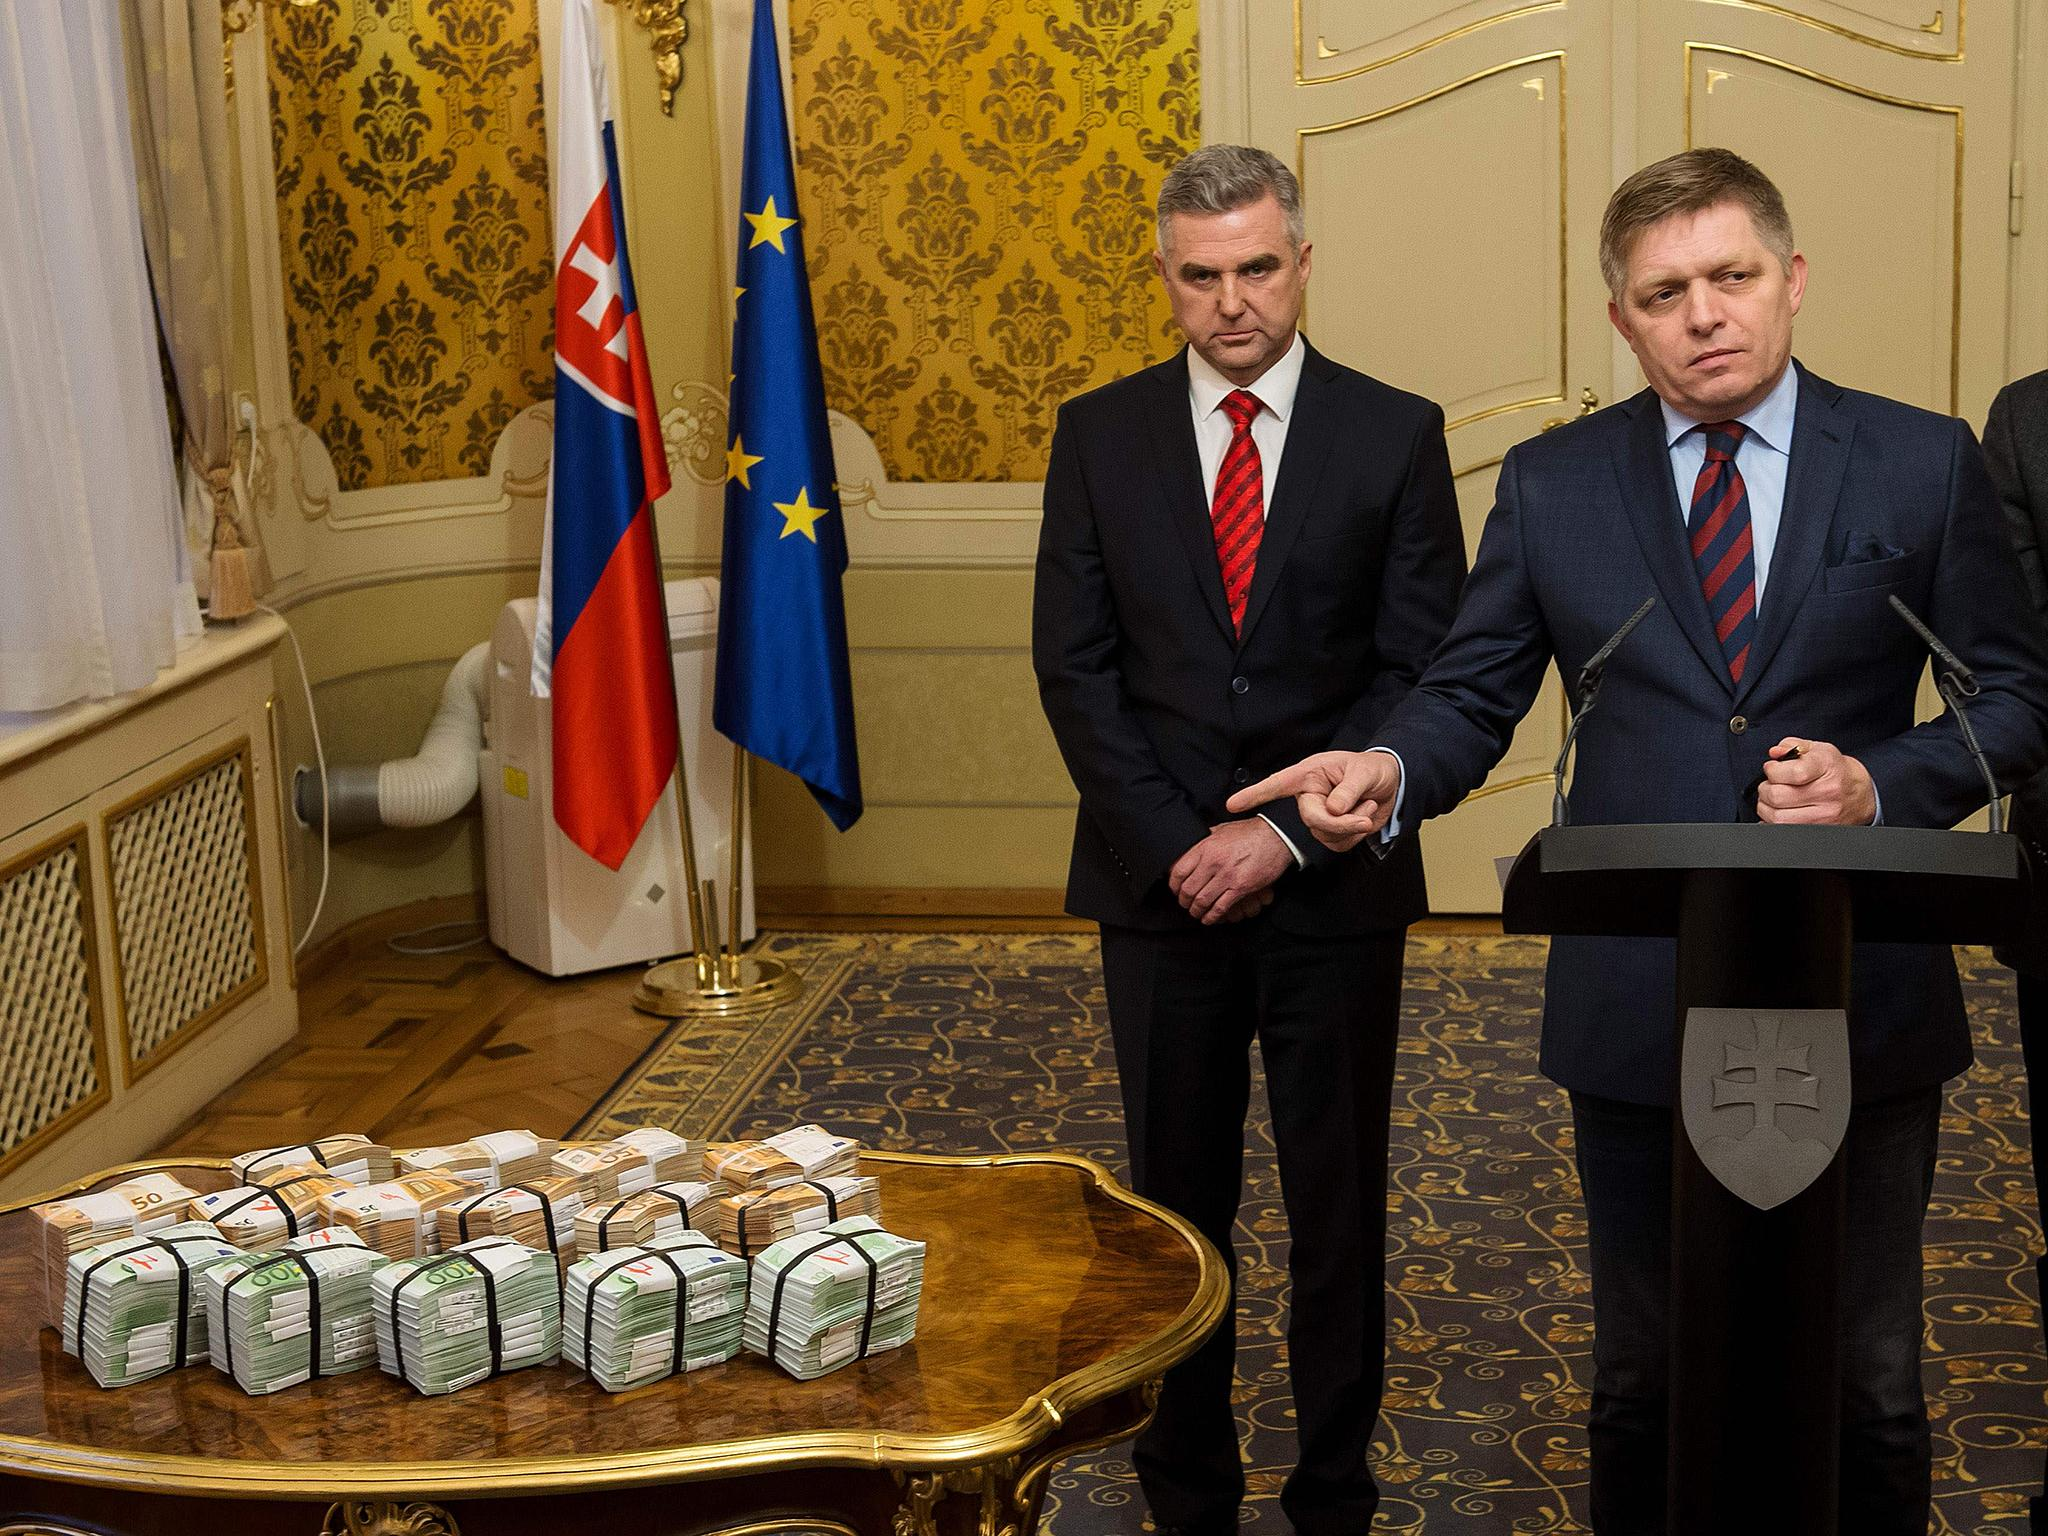 Slovak Prime Minister denies link to mafia as he offers €1m to find investigative journalist's killer